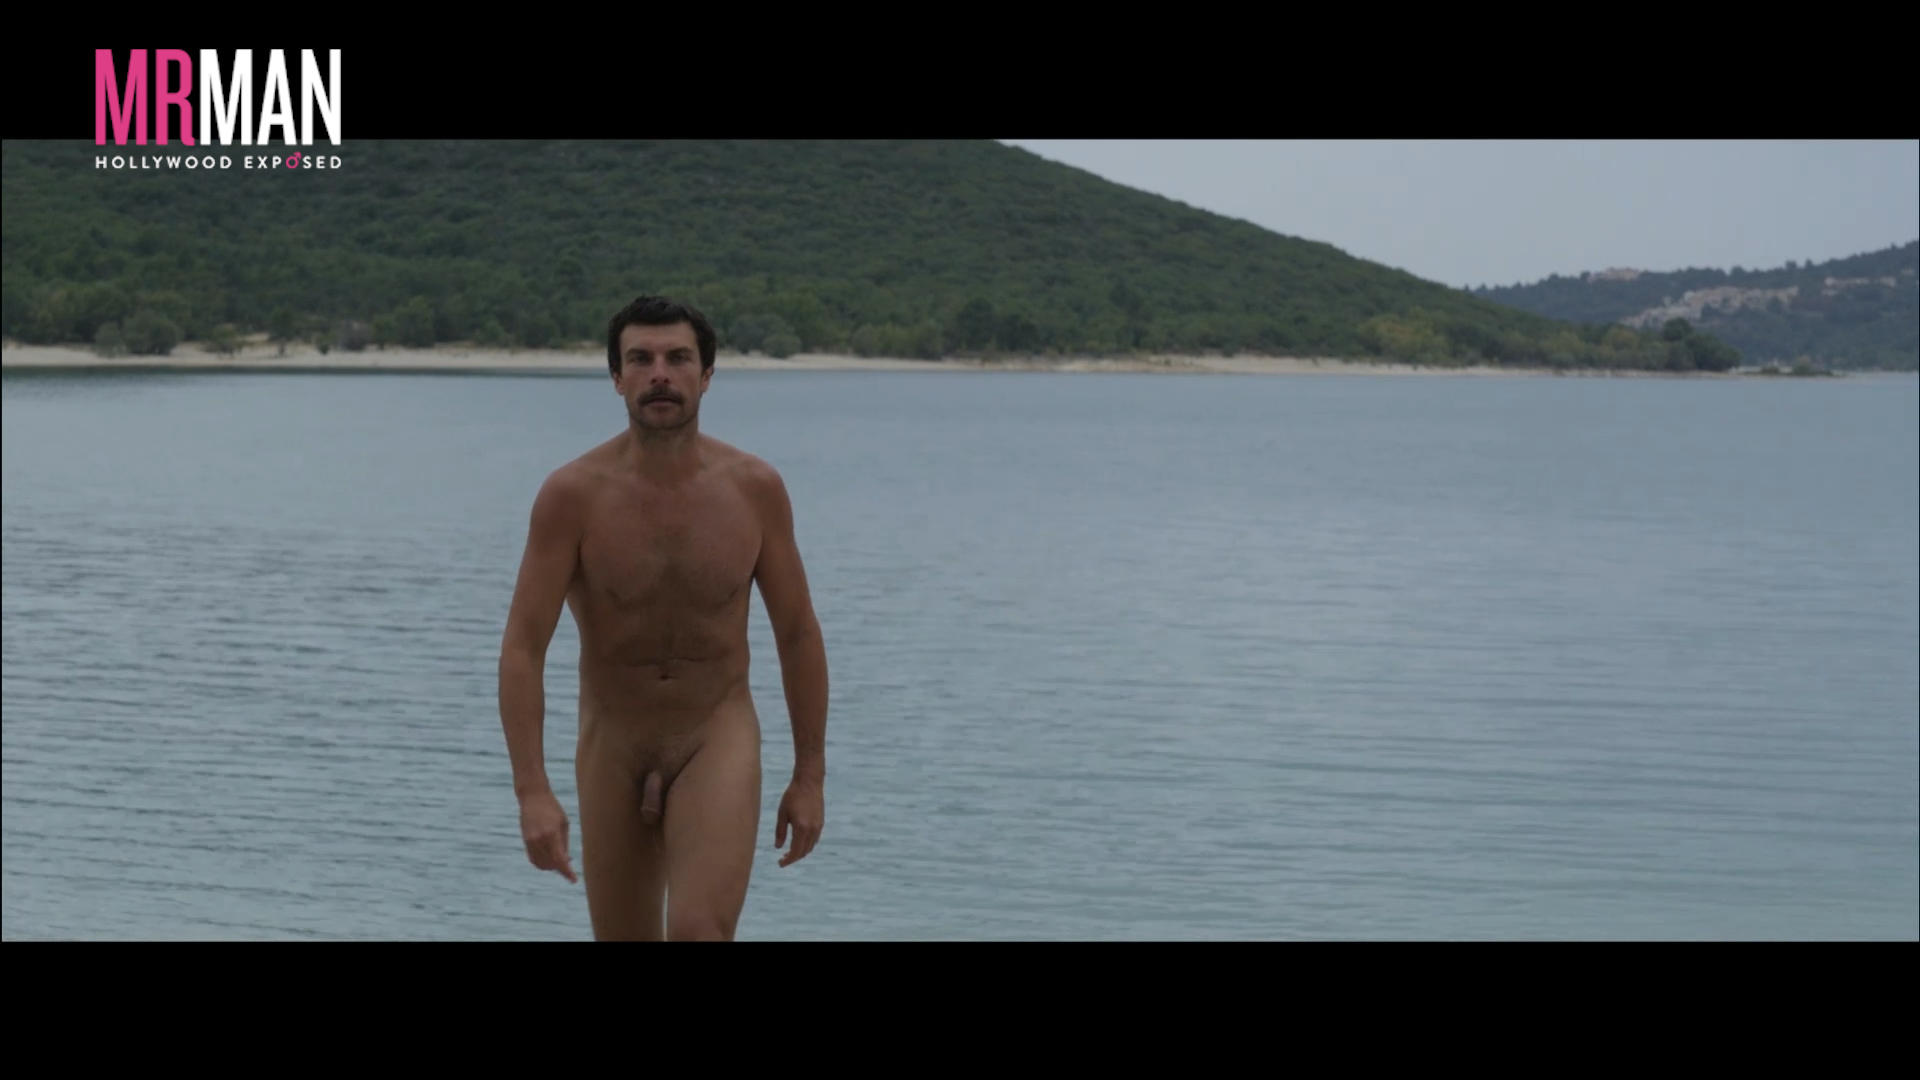 Gay Lake Nudity: It's A Thing! Plus Elba, Reynolds, And More